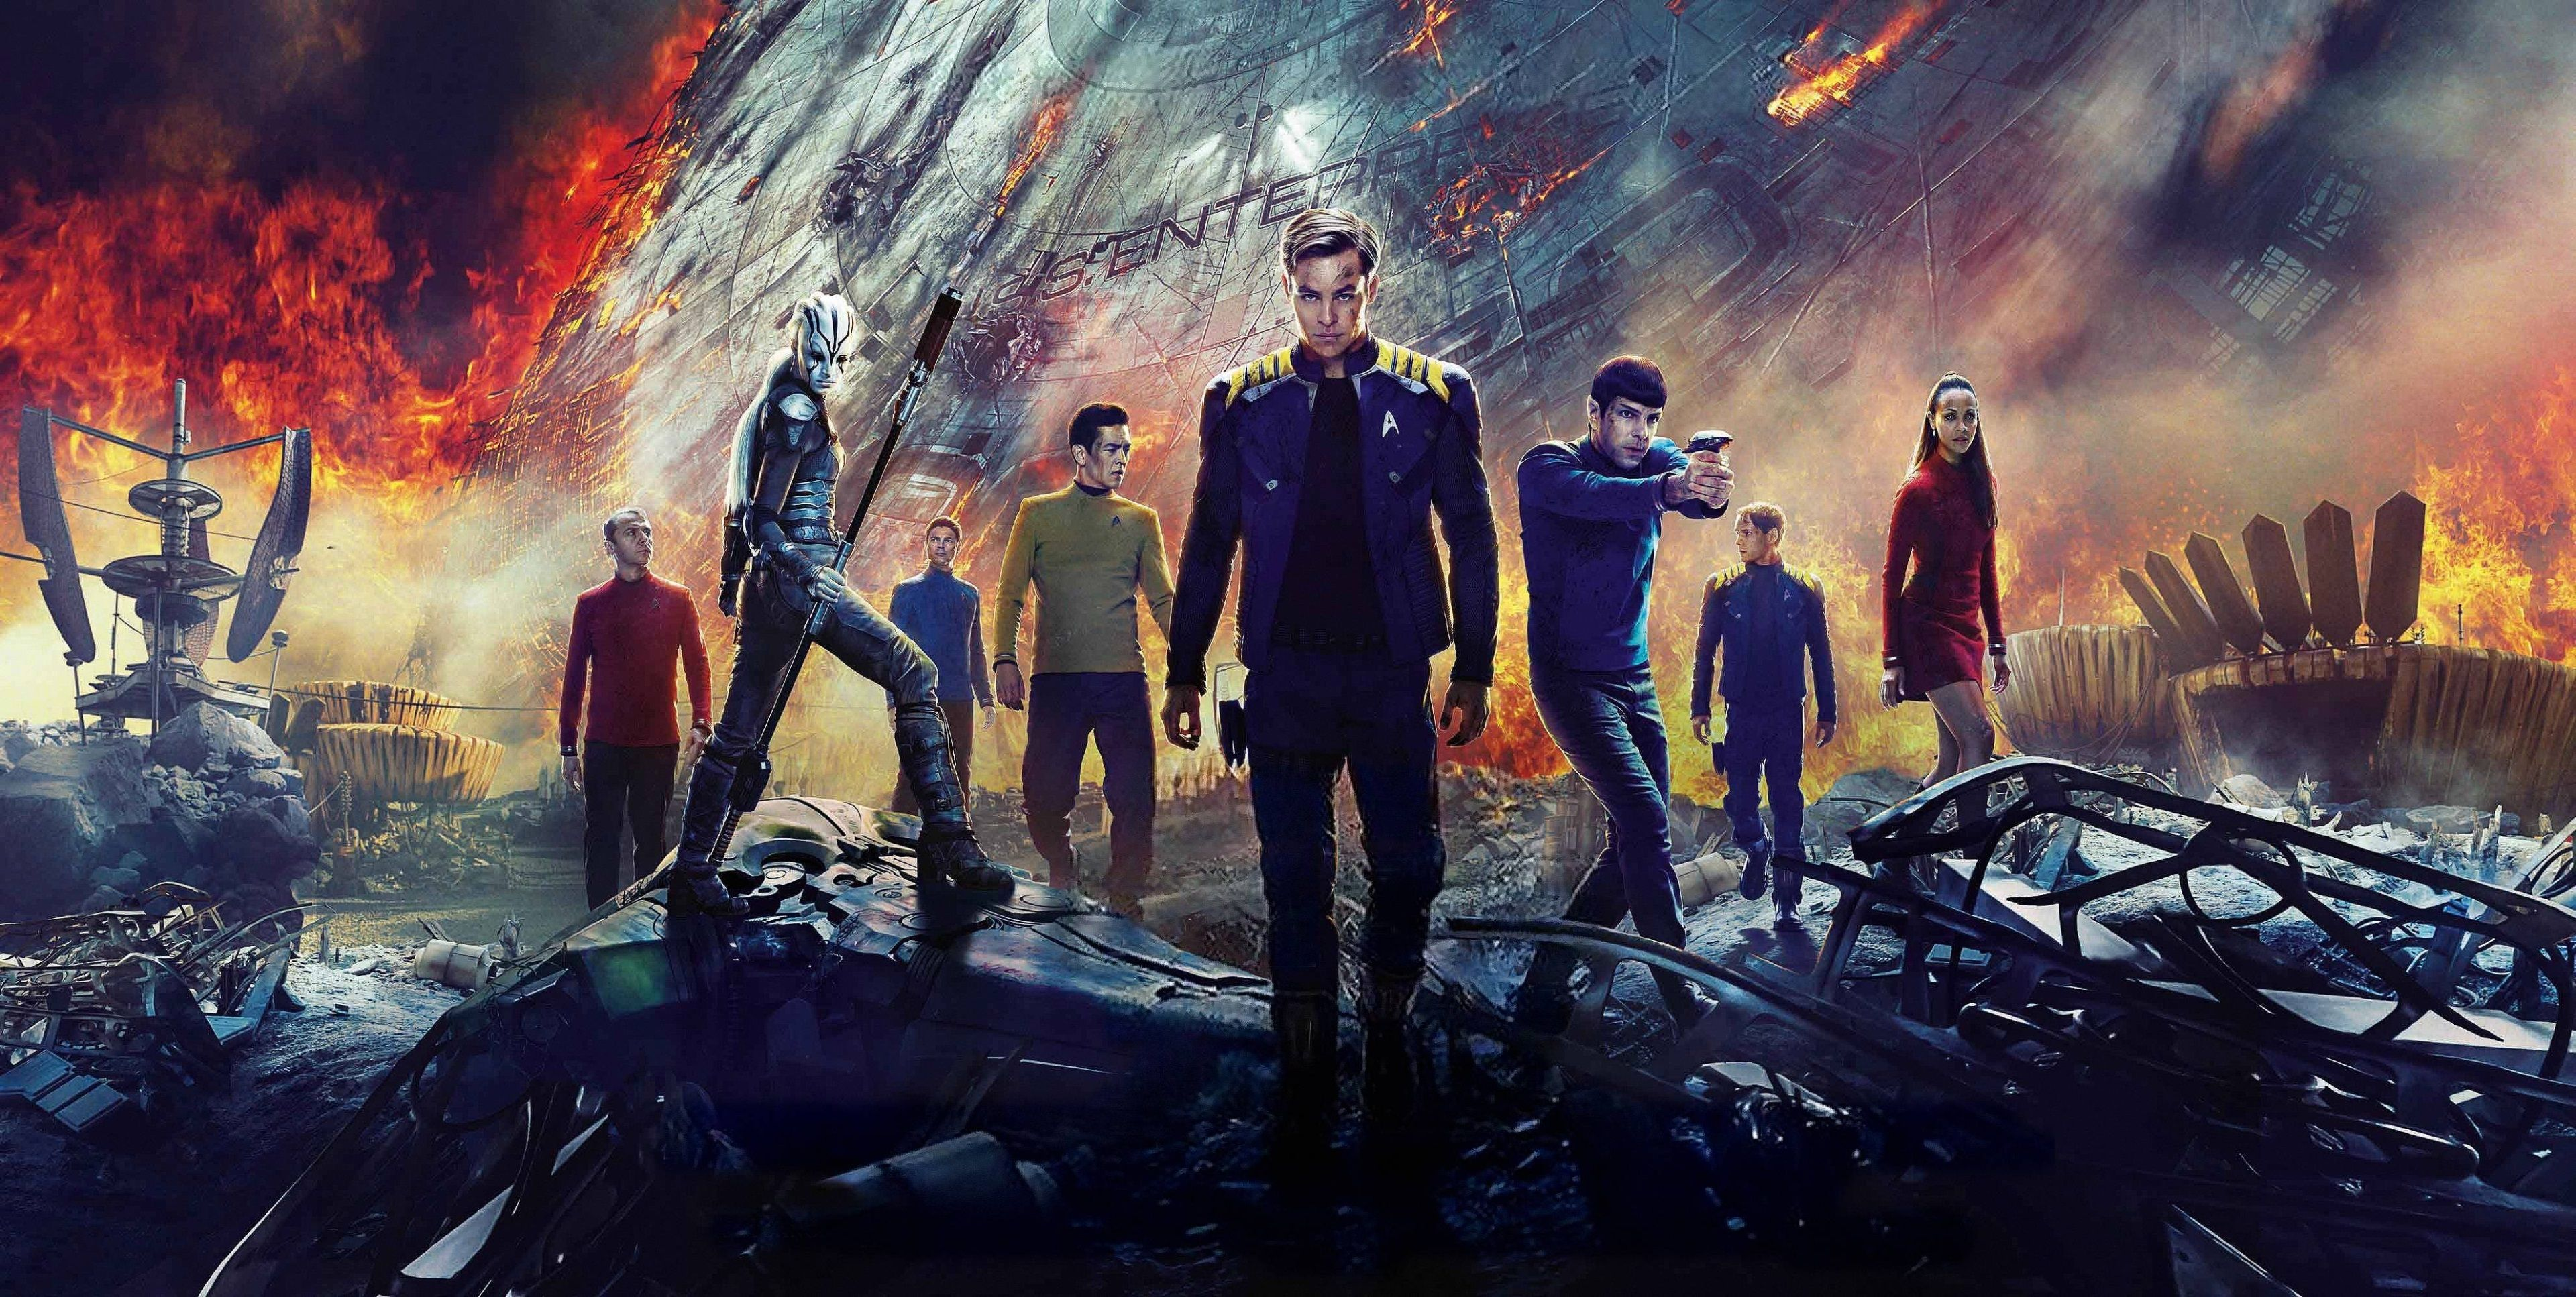 3840x1934 Star Trek Beyond 4k Wallpaper Background Desktop Computer Star Trek Star Trek Beyond Wallpaper